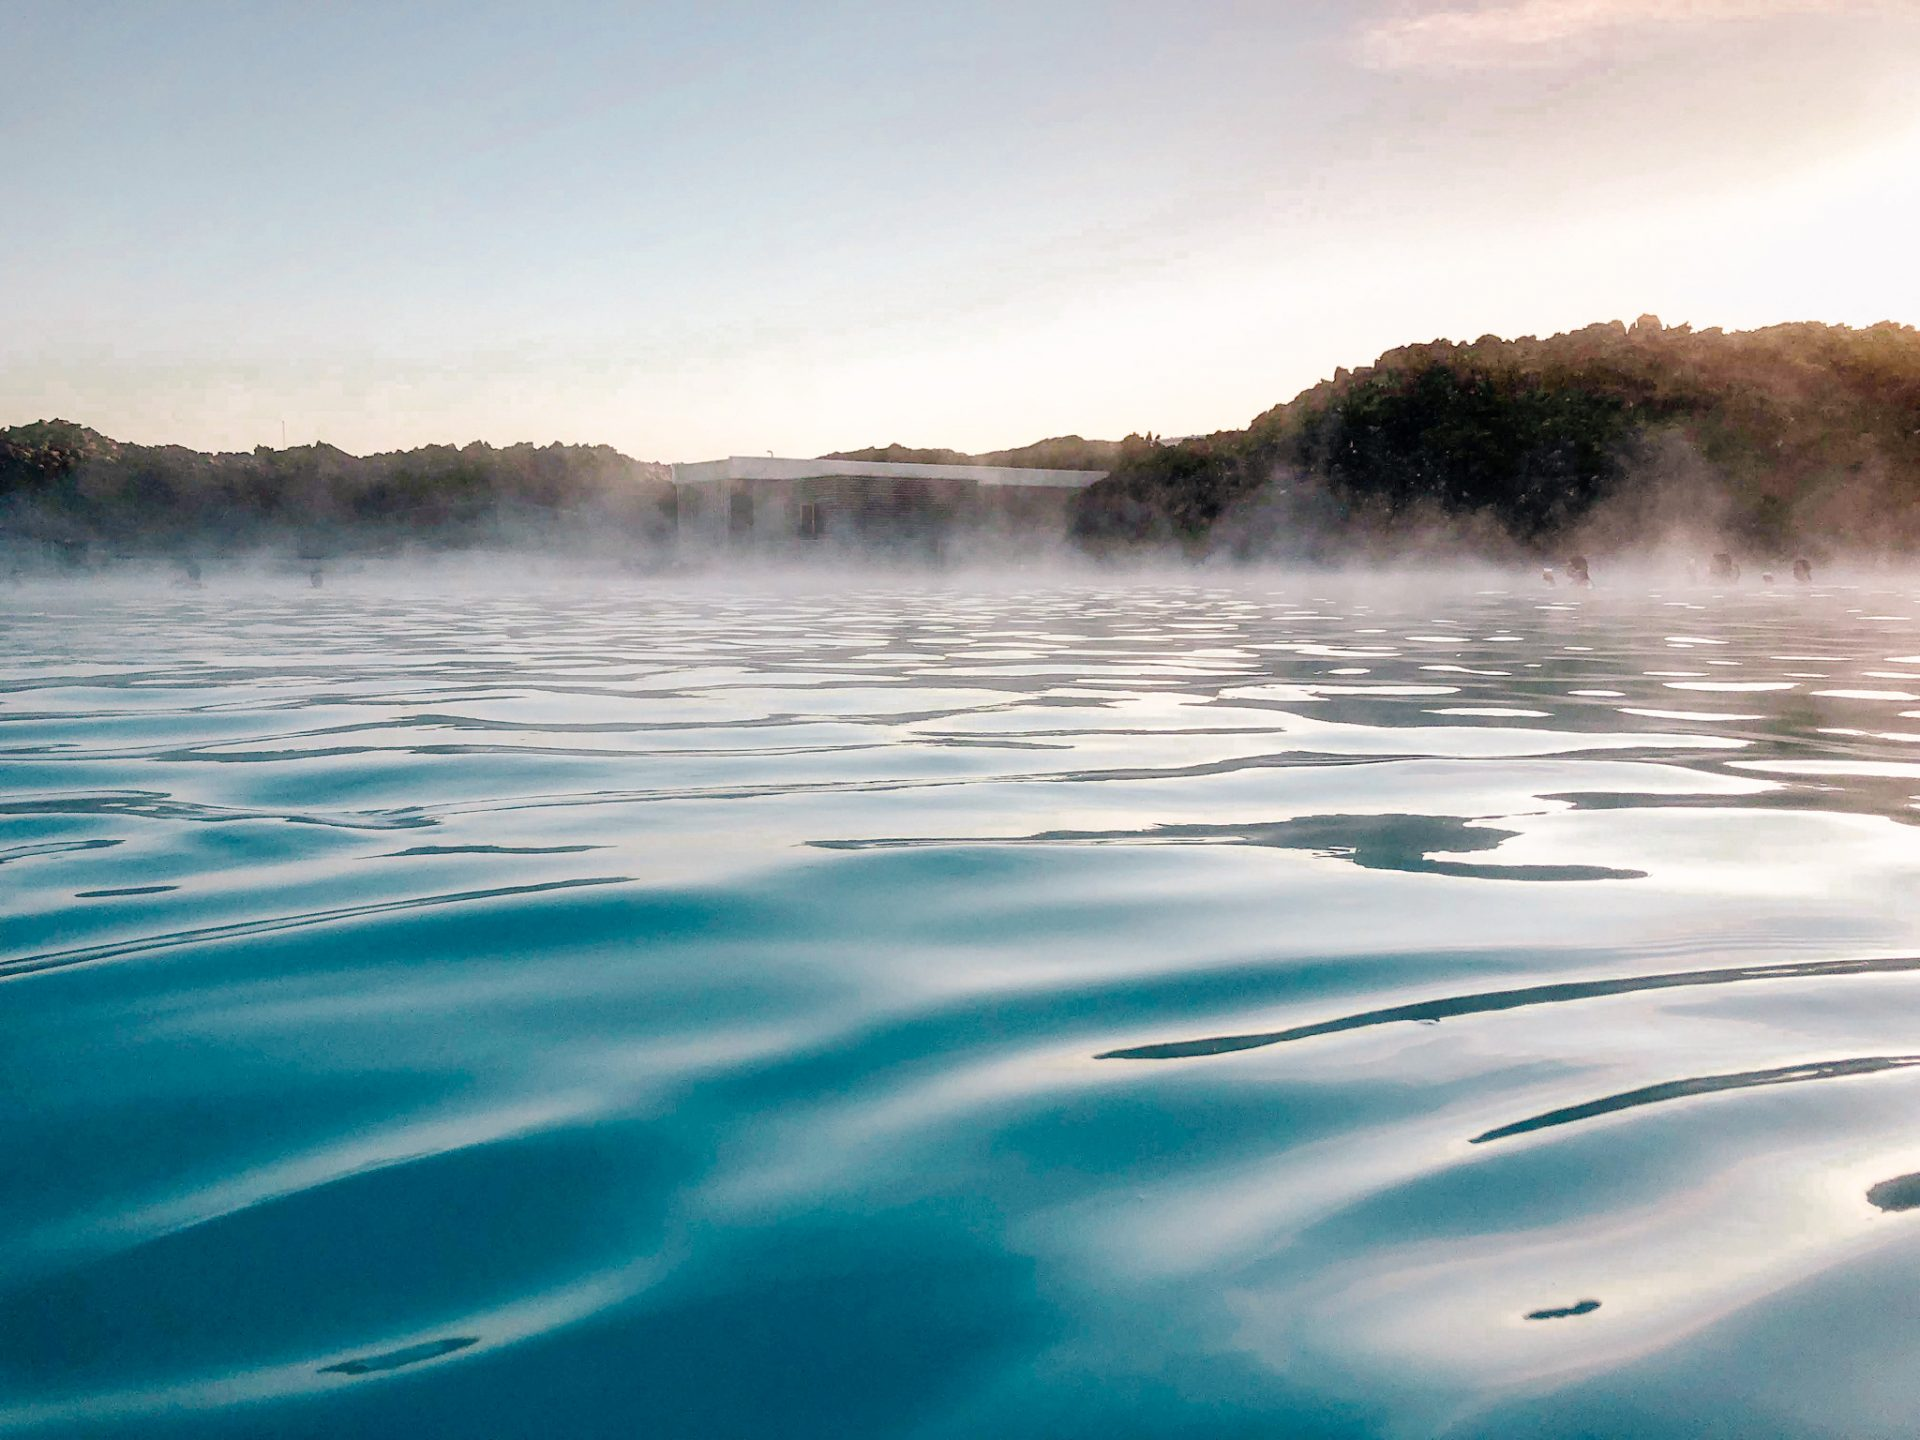 Milky blue water of the blue lagoon located in Iceland. Steam rising up from the water as the sun sets over the horizon.